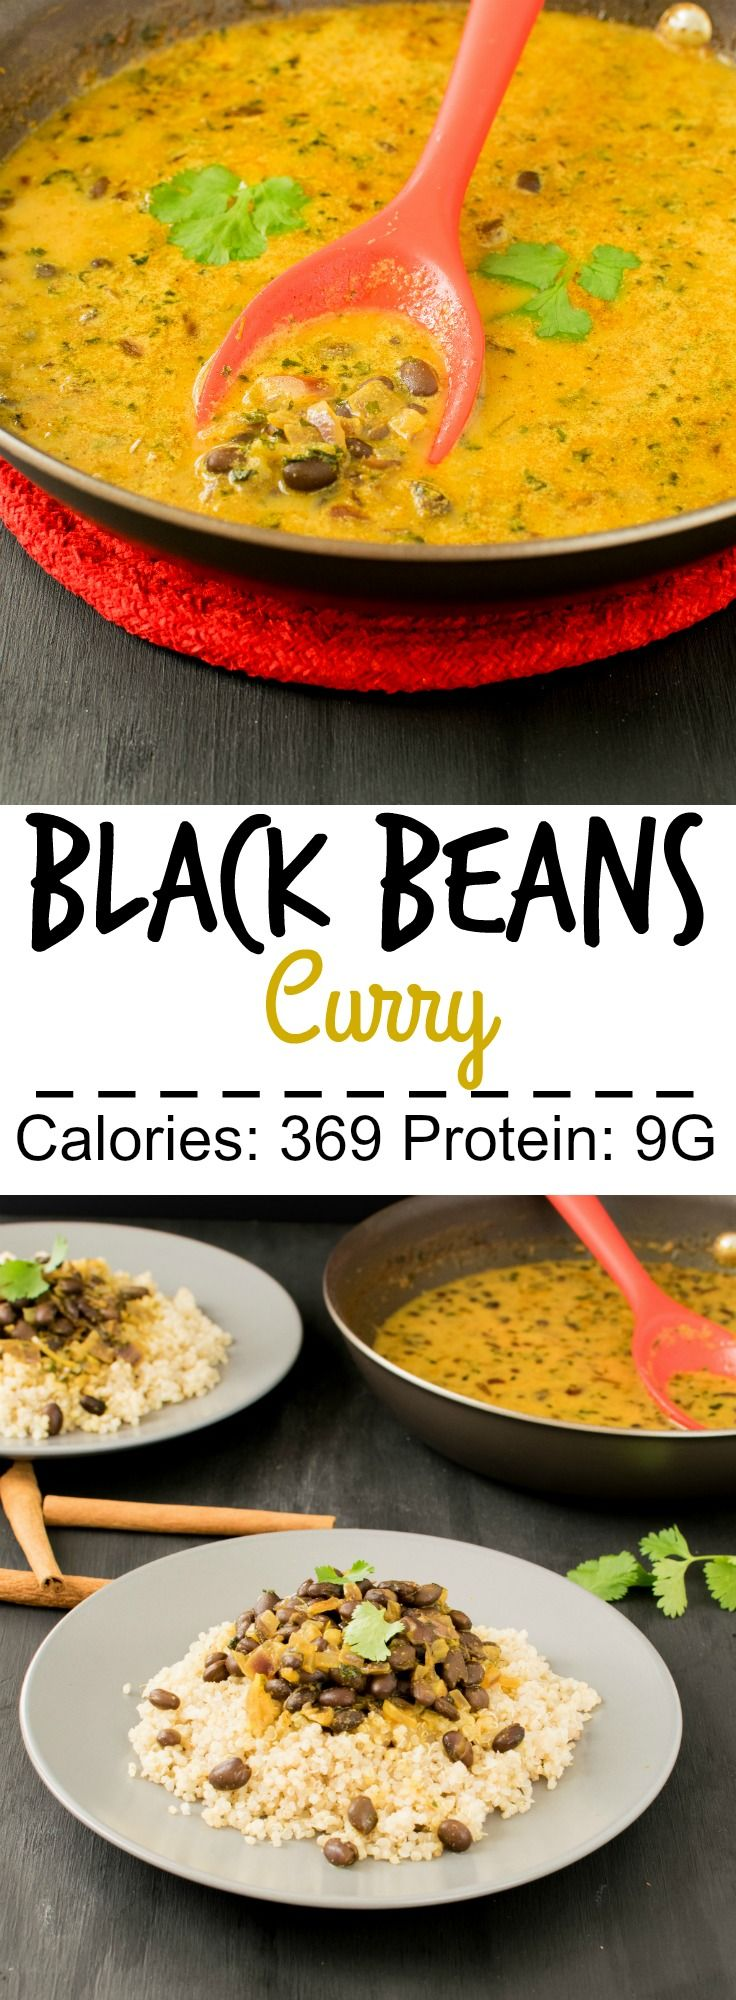 Black Beans Curry | vegan and gluten free entree to be served over quinoa or brown rice and ready in less than 30 minutes | kiipfit.com